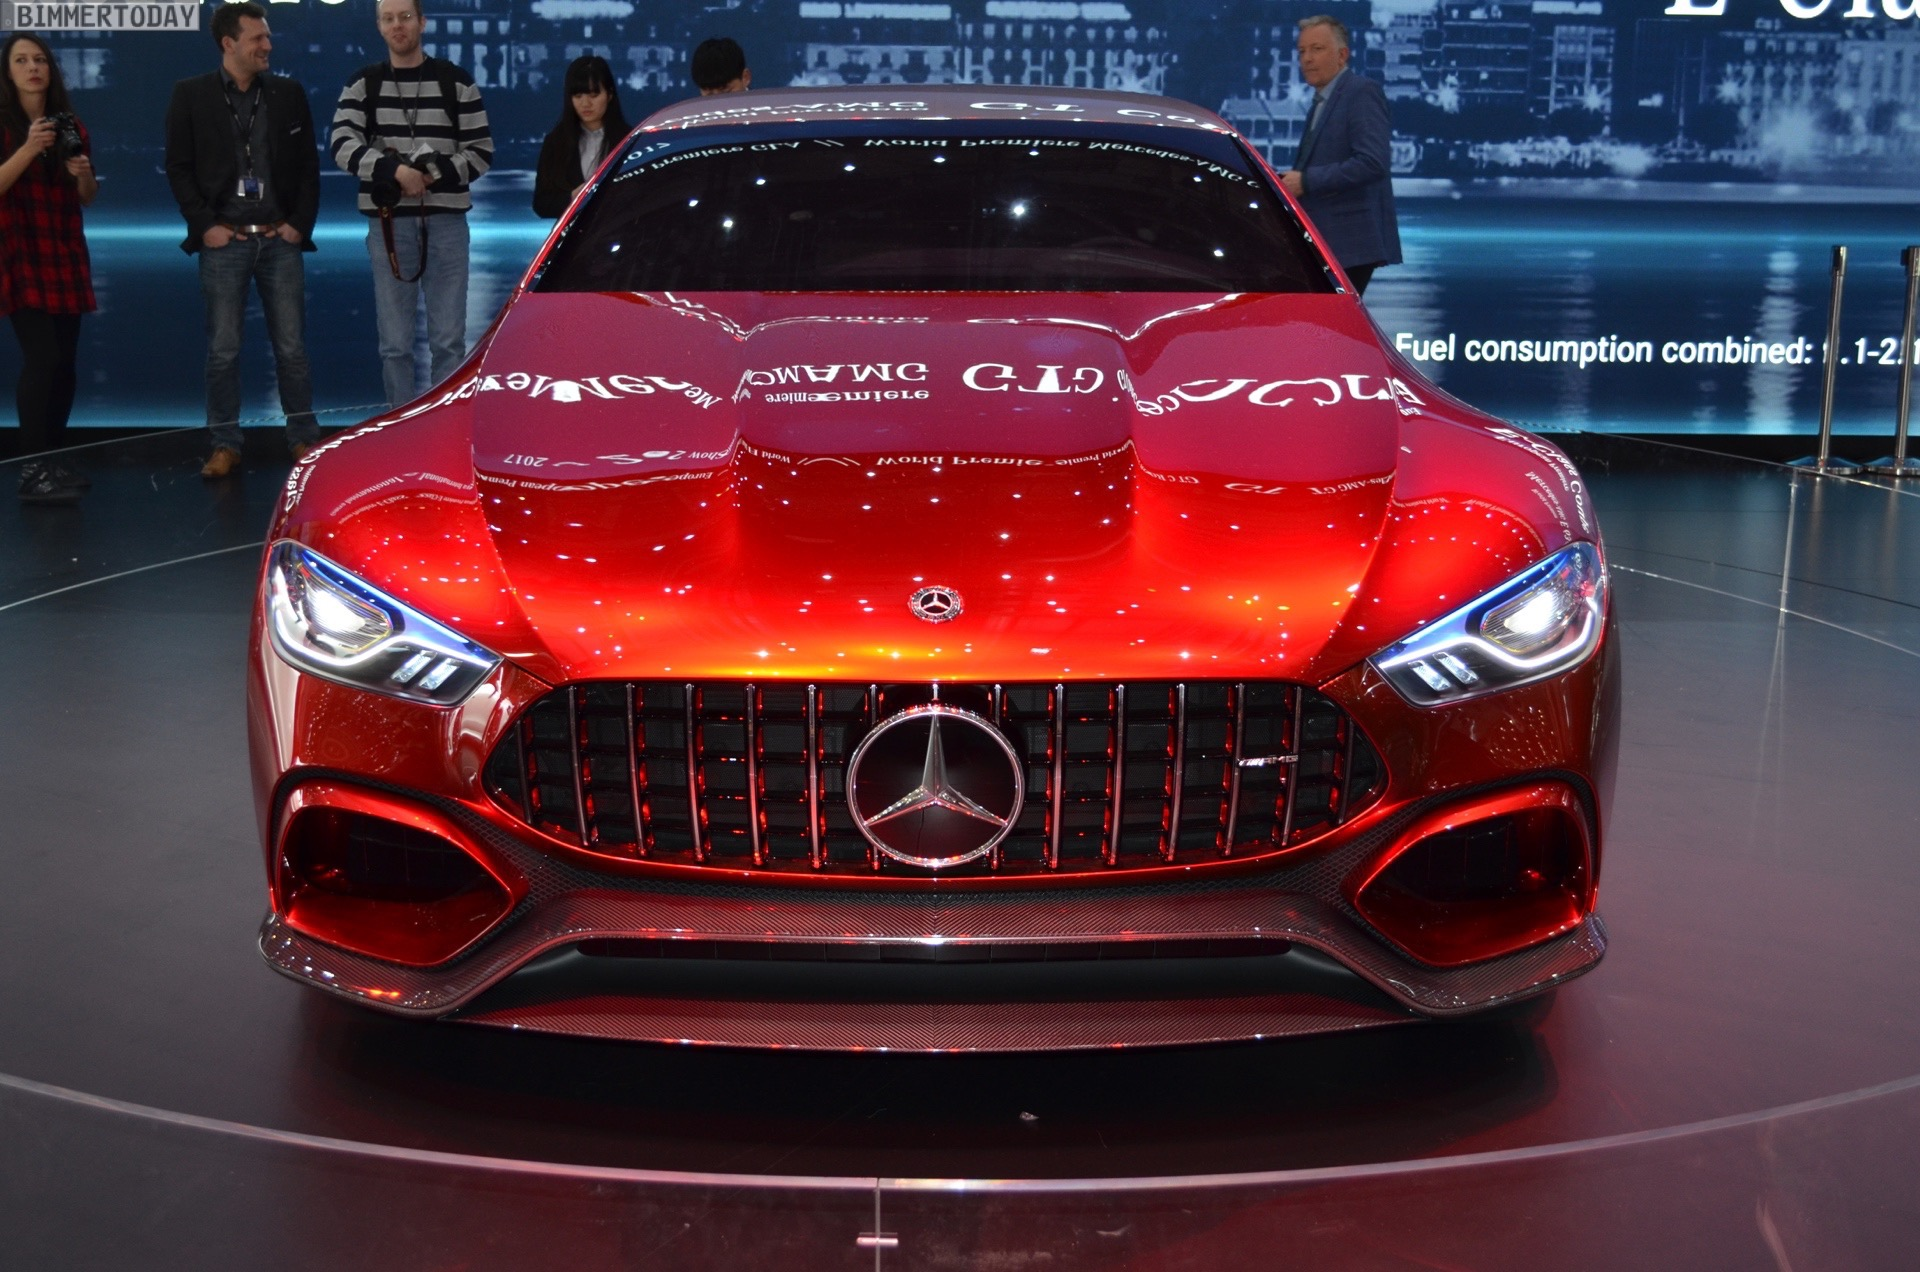 Mercedes Amg Gt Concept Unveiled At The 2017 Geneva Motor Show